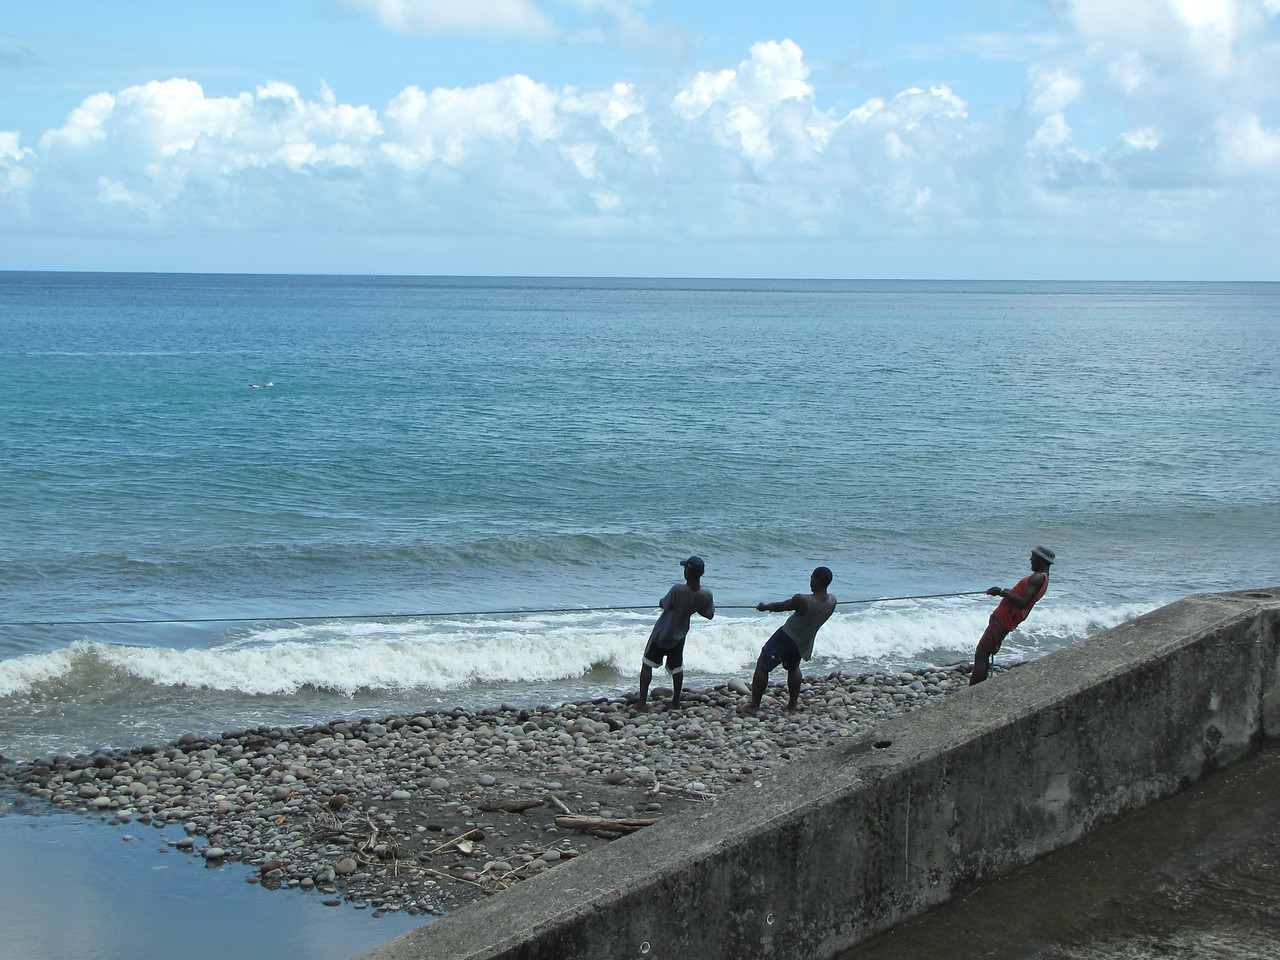 Fishermen hauling in a large net.